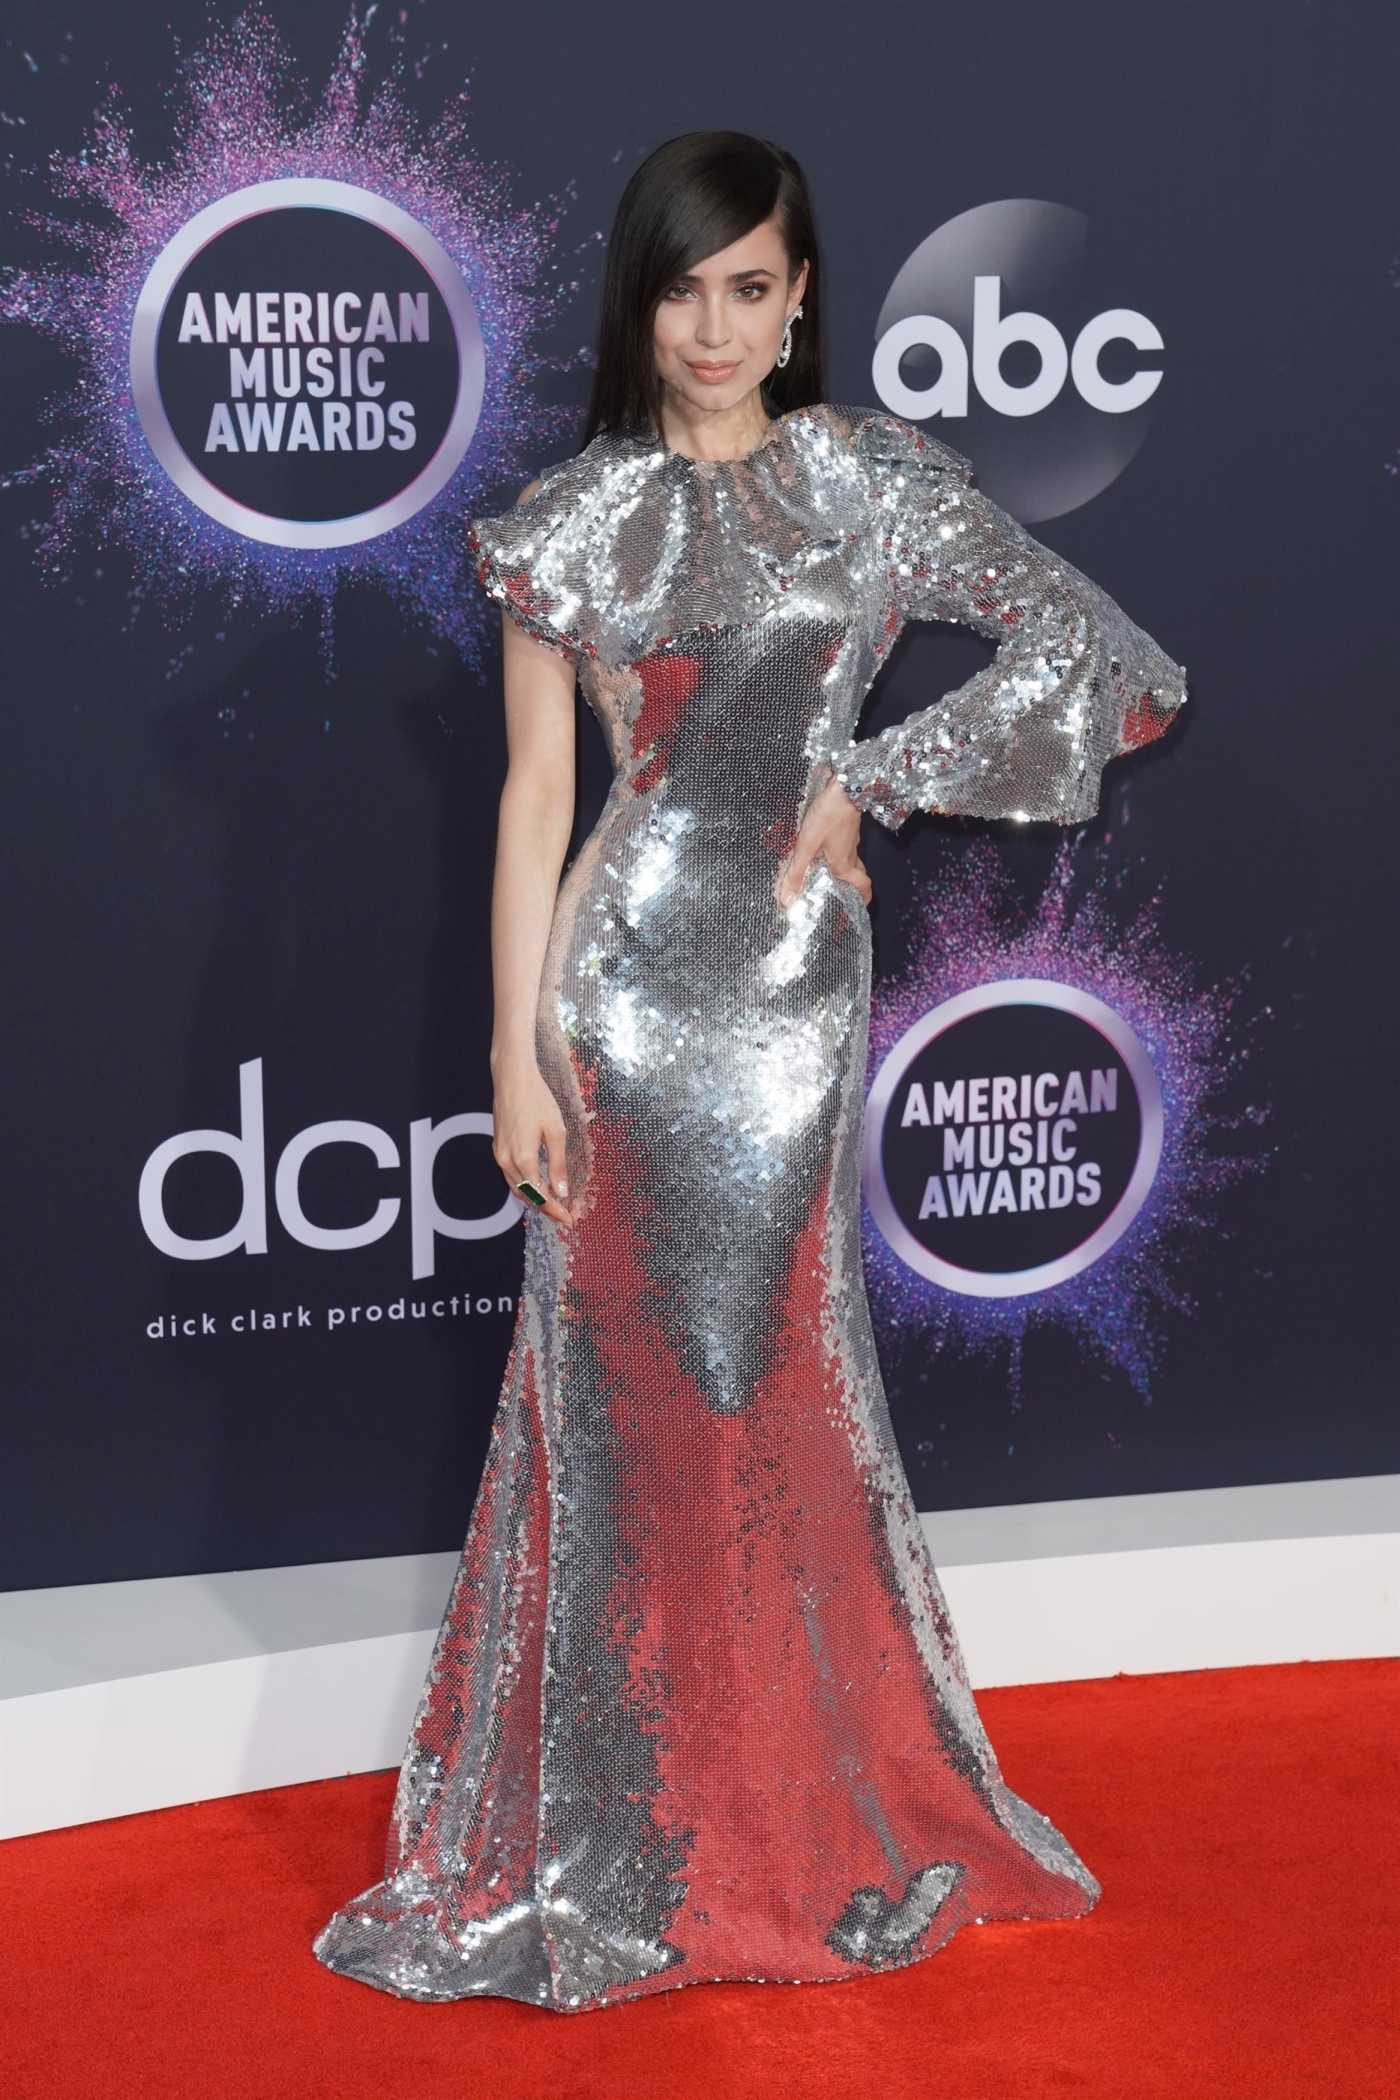 Sofia Carson Attends the 2019 American Music Awards at Microsoft Theater in Los Angeles 11/24/2019